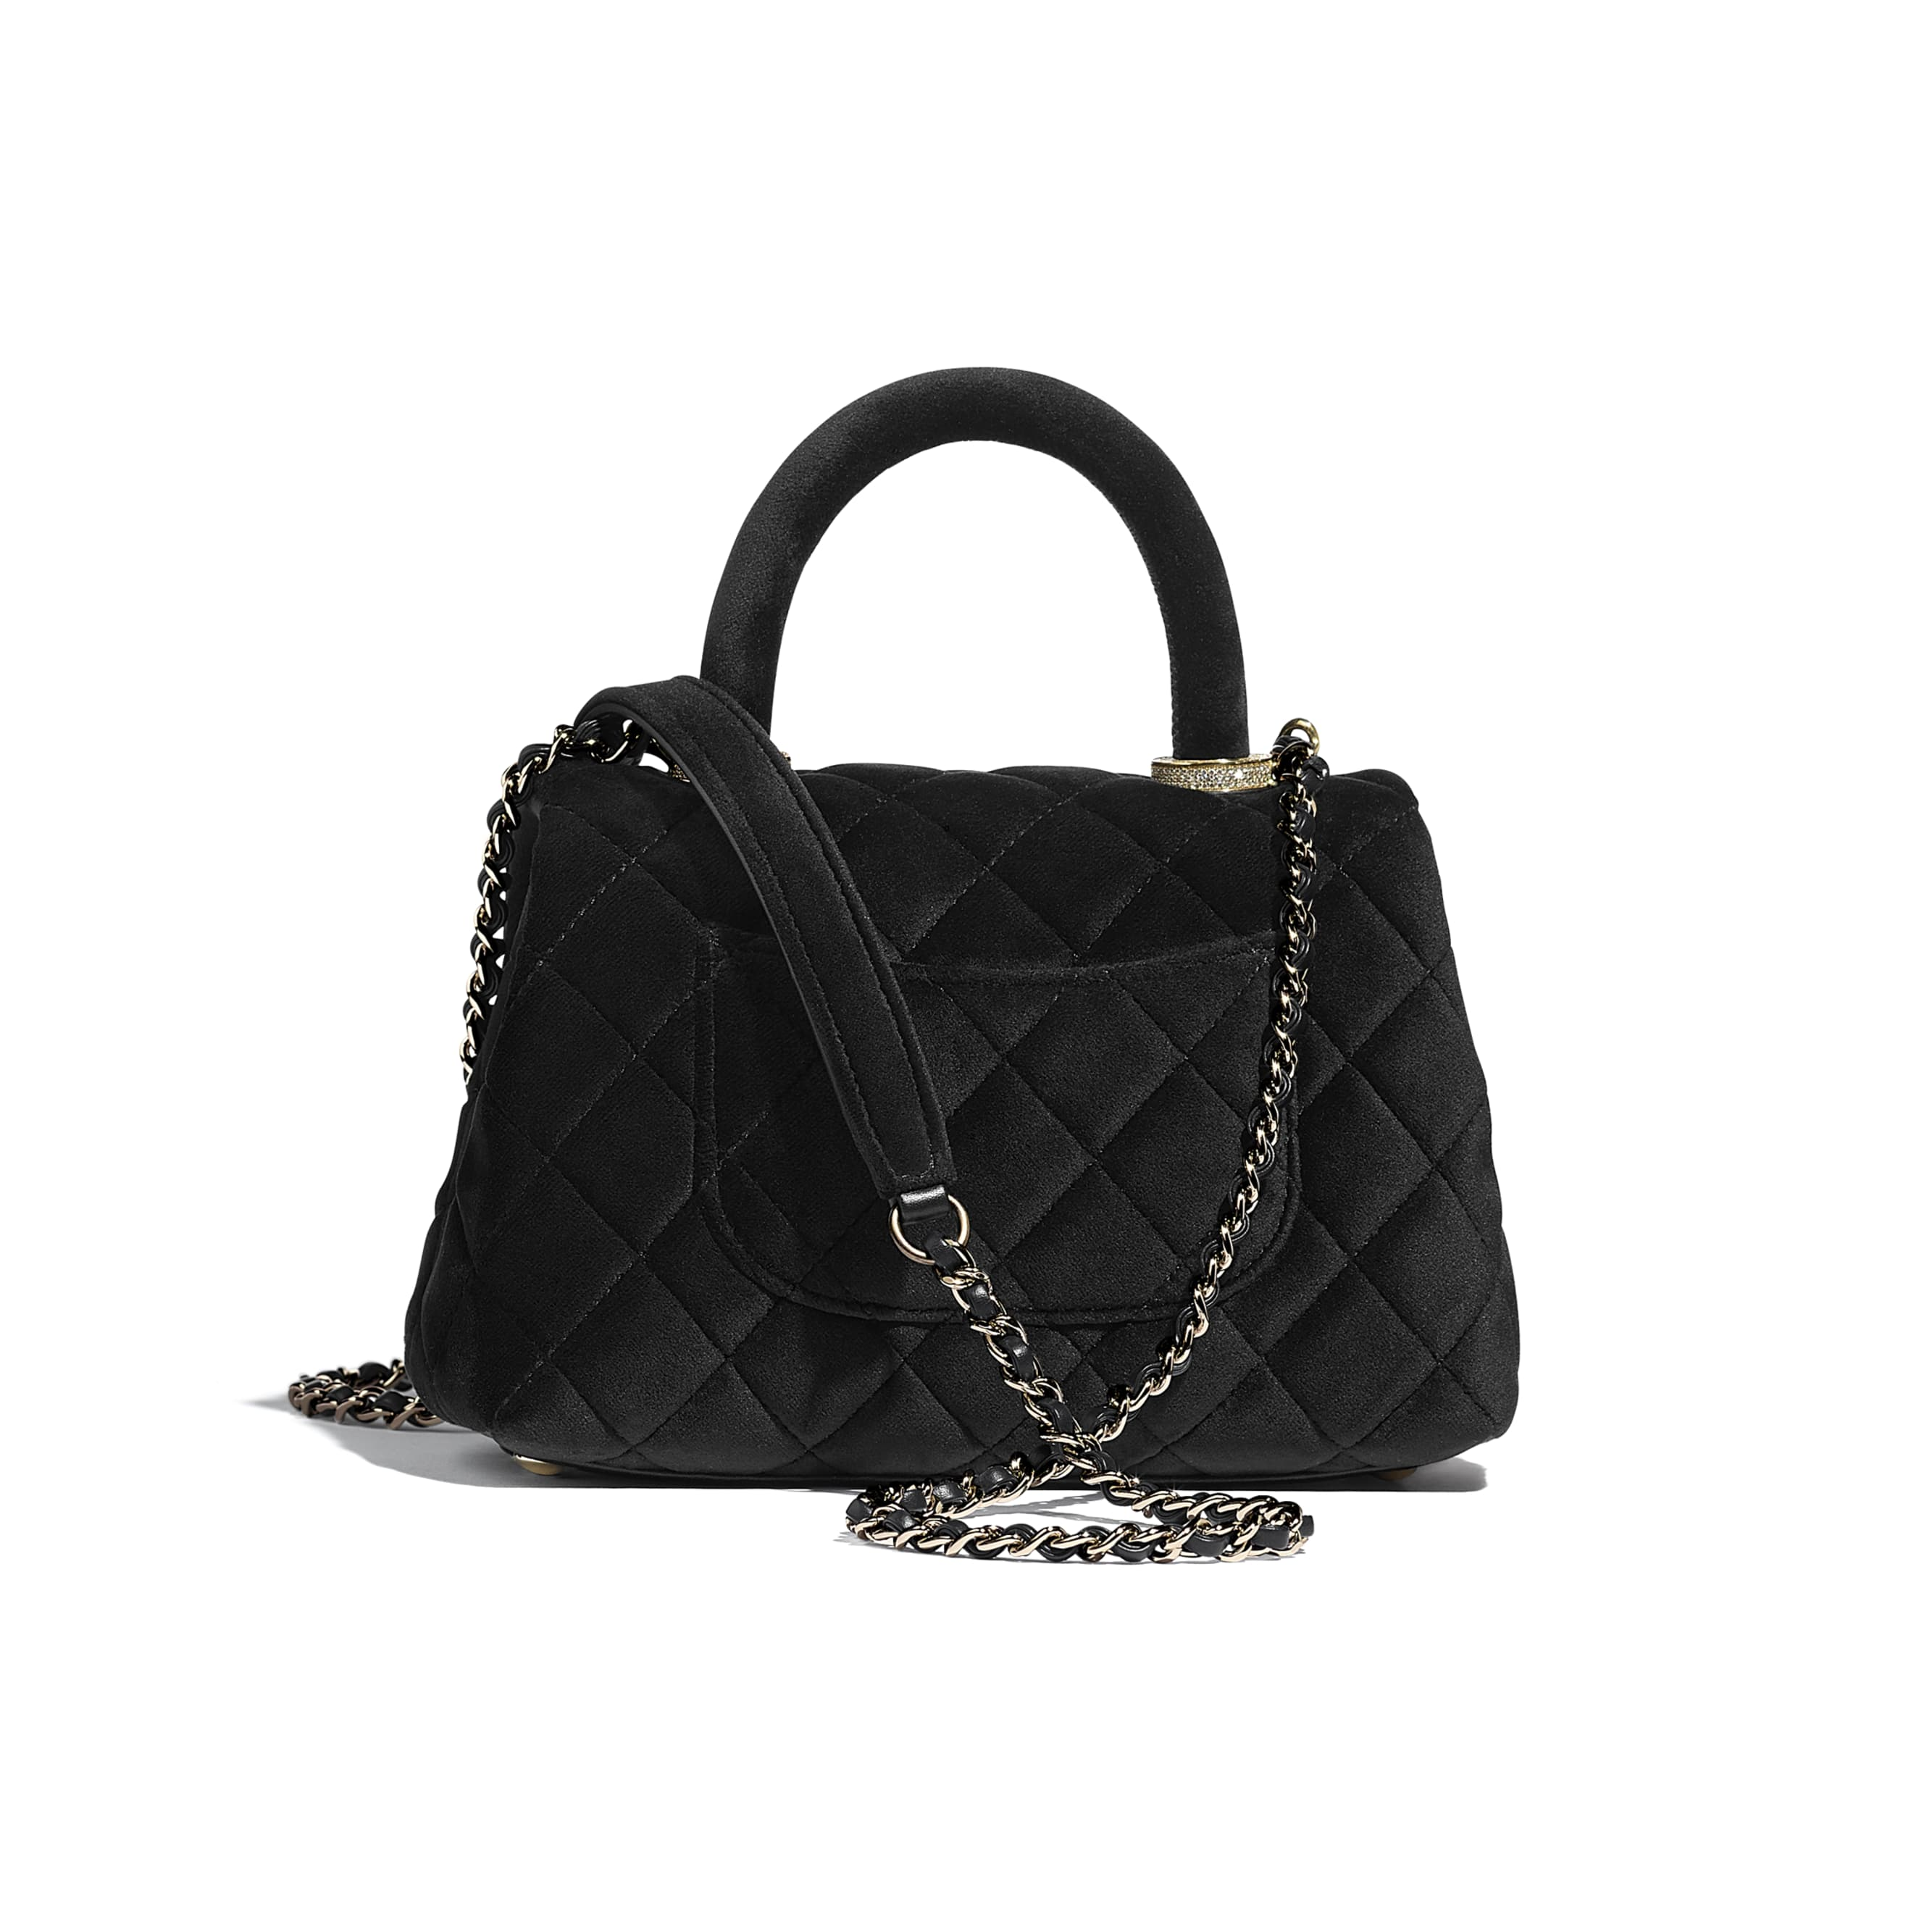 Mini Flap Bag with Top Handle - Black - Velvet, Diamanté & Gold-Tone Metal - CHANEL - Alternative view - see standard sized version